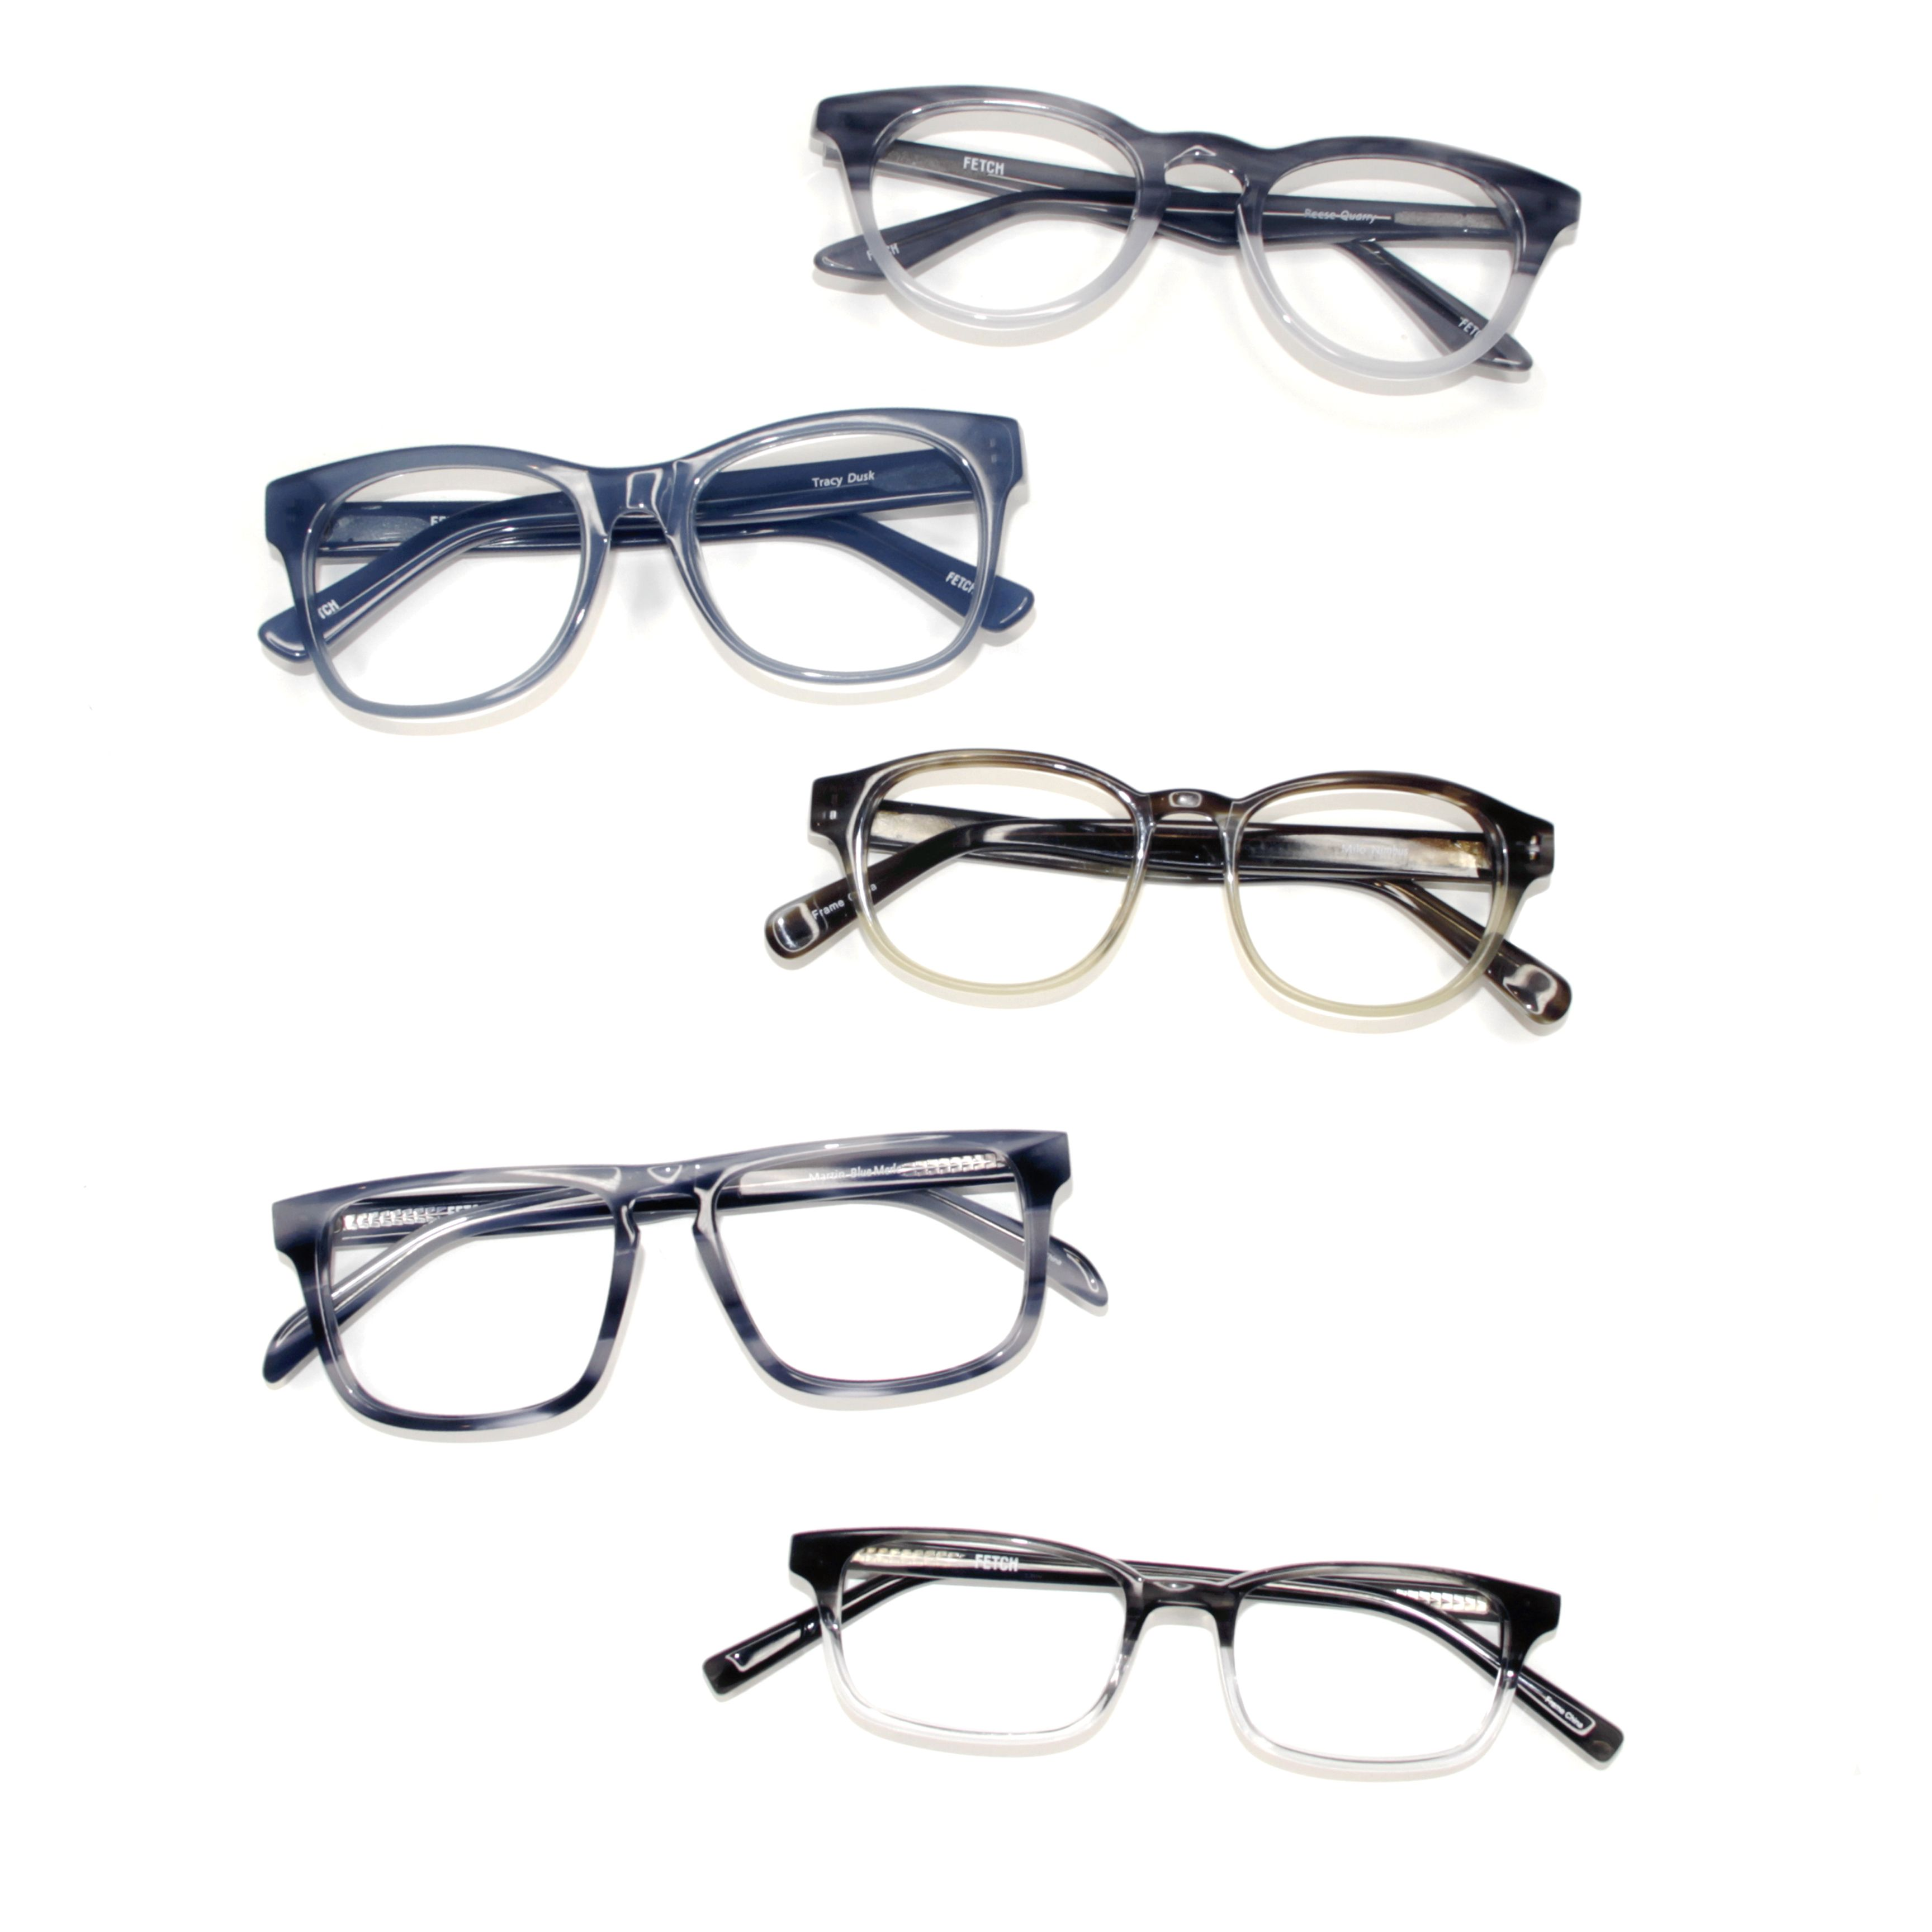 7b6b7ce11d Get frames and lenses for as low as  95 at Fetch!  affordableeyewear   stylishglasses  womensglasses  mensglasses  roundframes  acetateframes